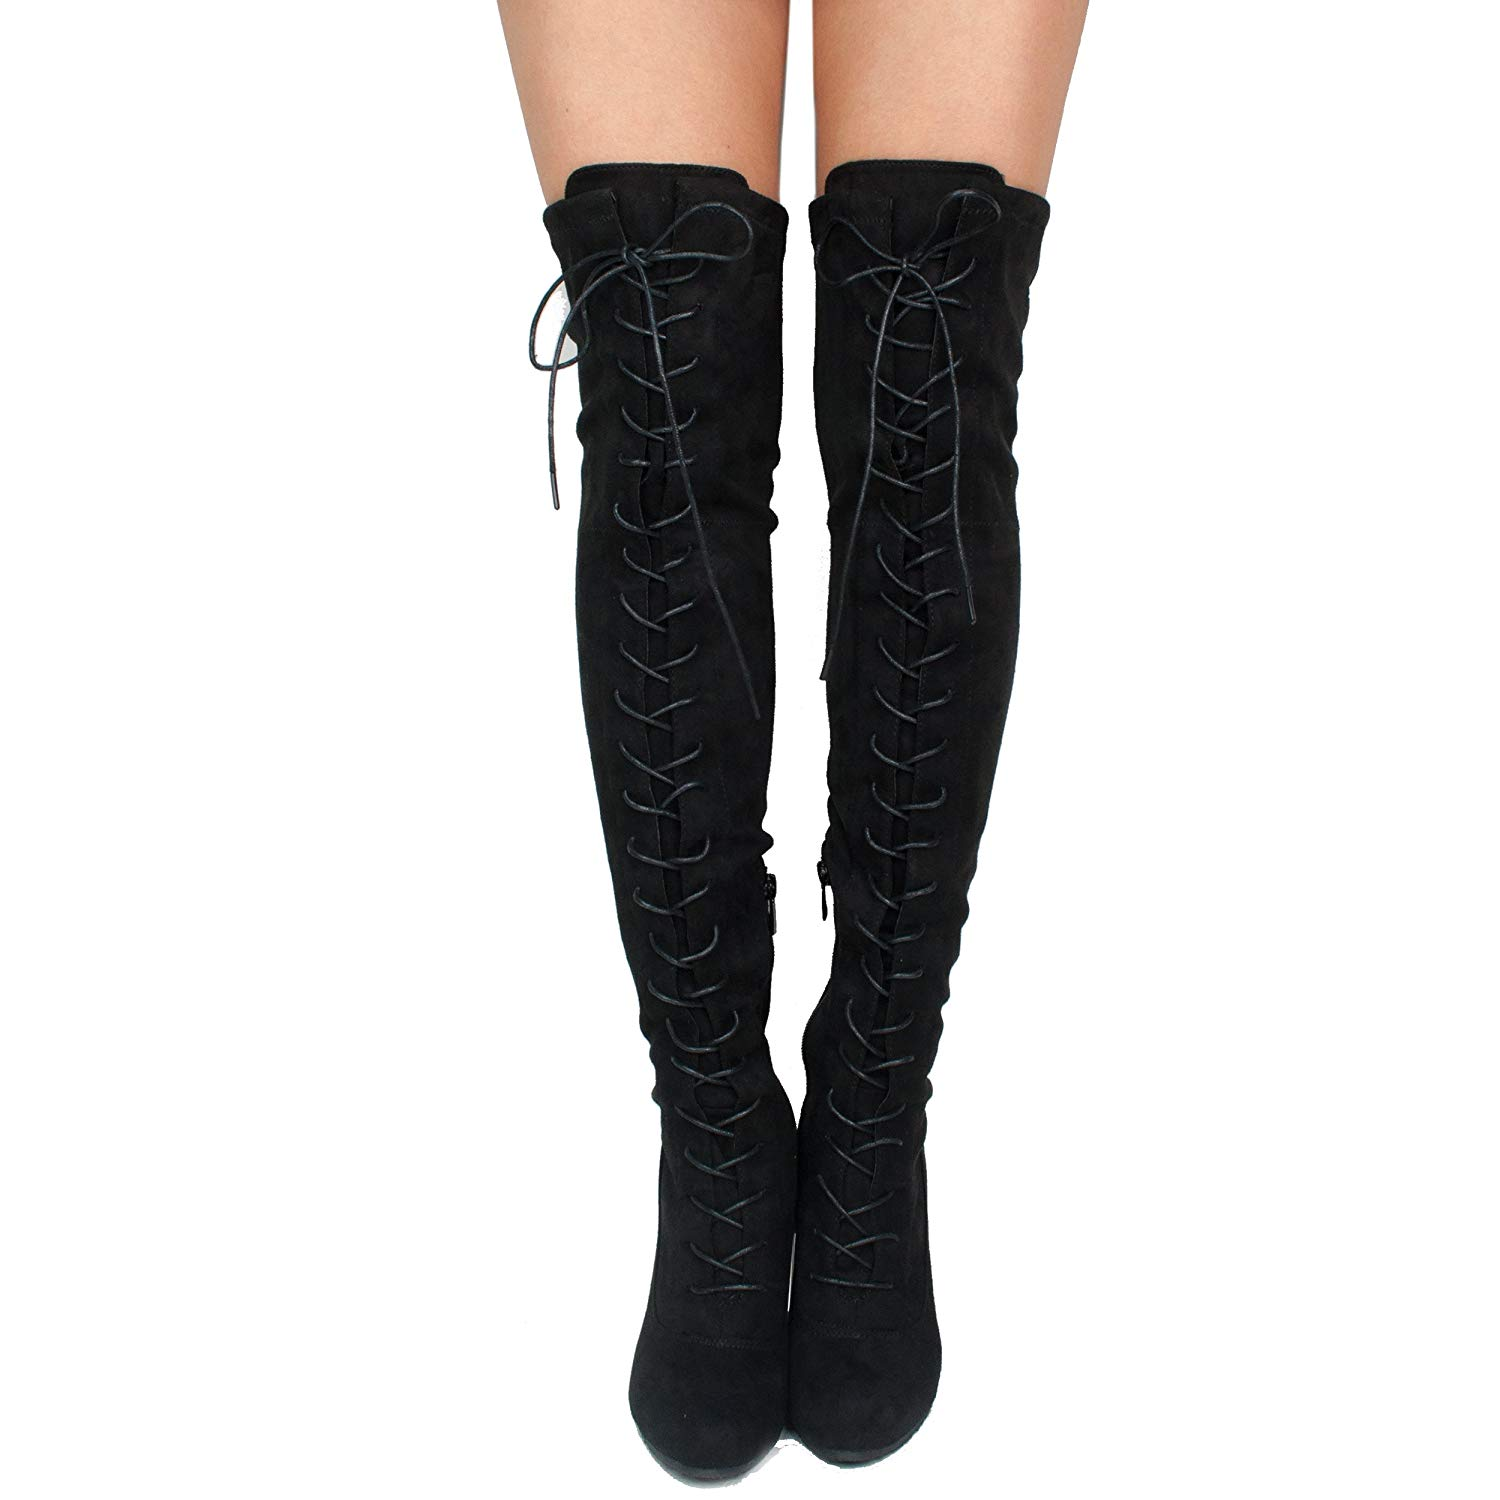 SNJ Women's Lace-up Long Comfy Suede Block Style Over The Knee High Chunky Heel Long Boots